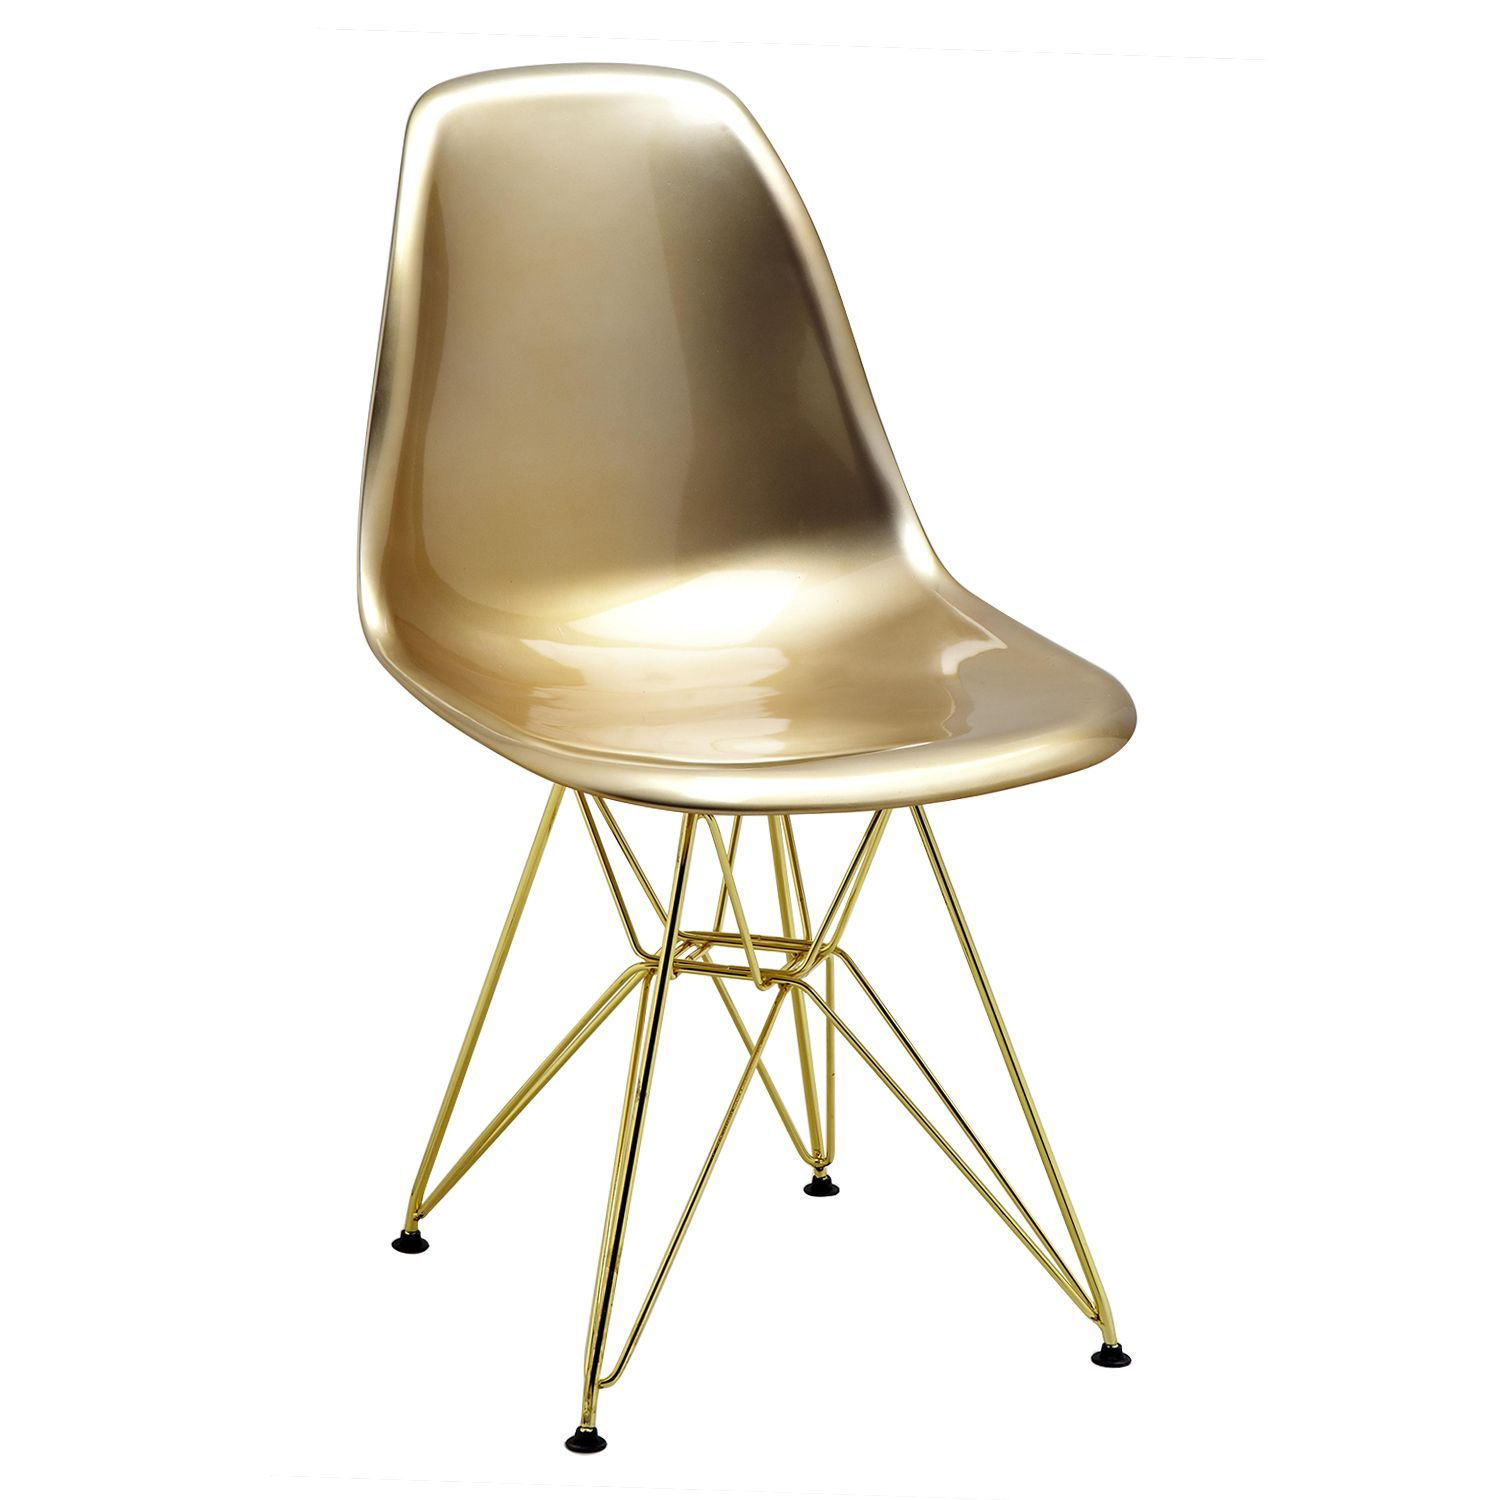 Sillas Tower Silla Tower Gold Edition Sillas Modern Classics Sillas Diseño